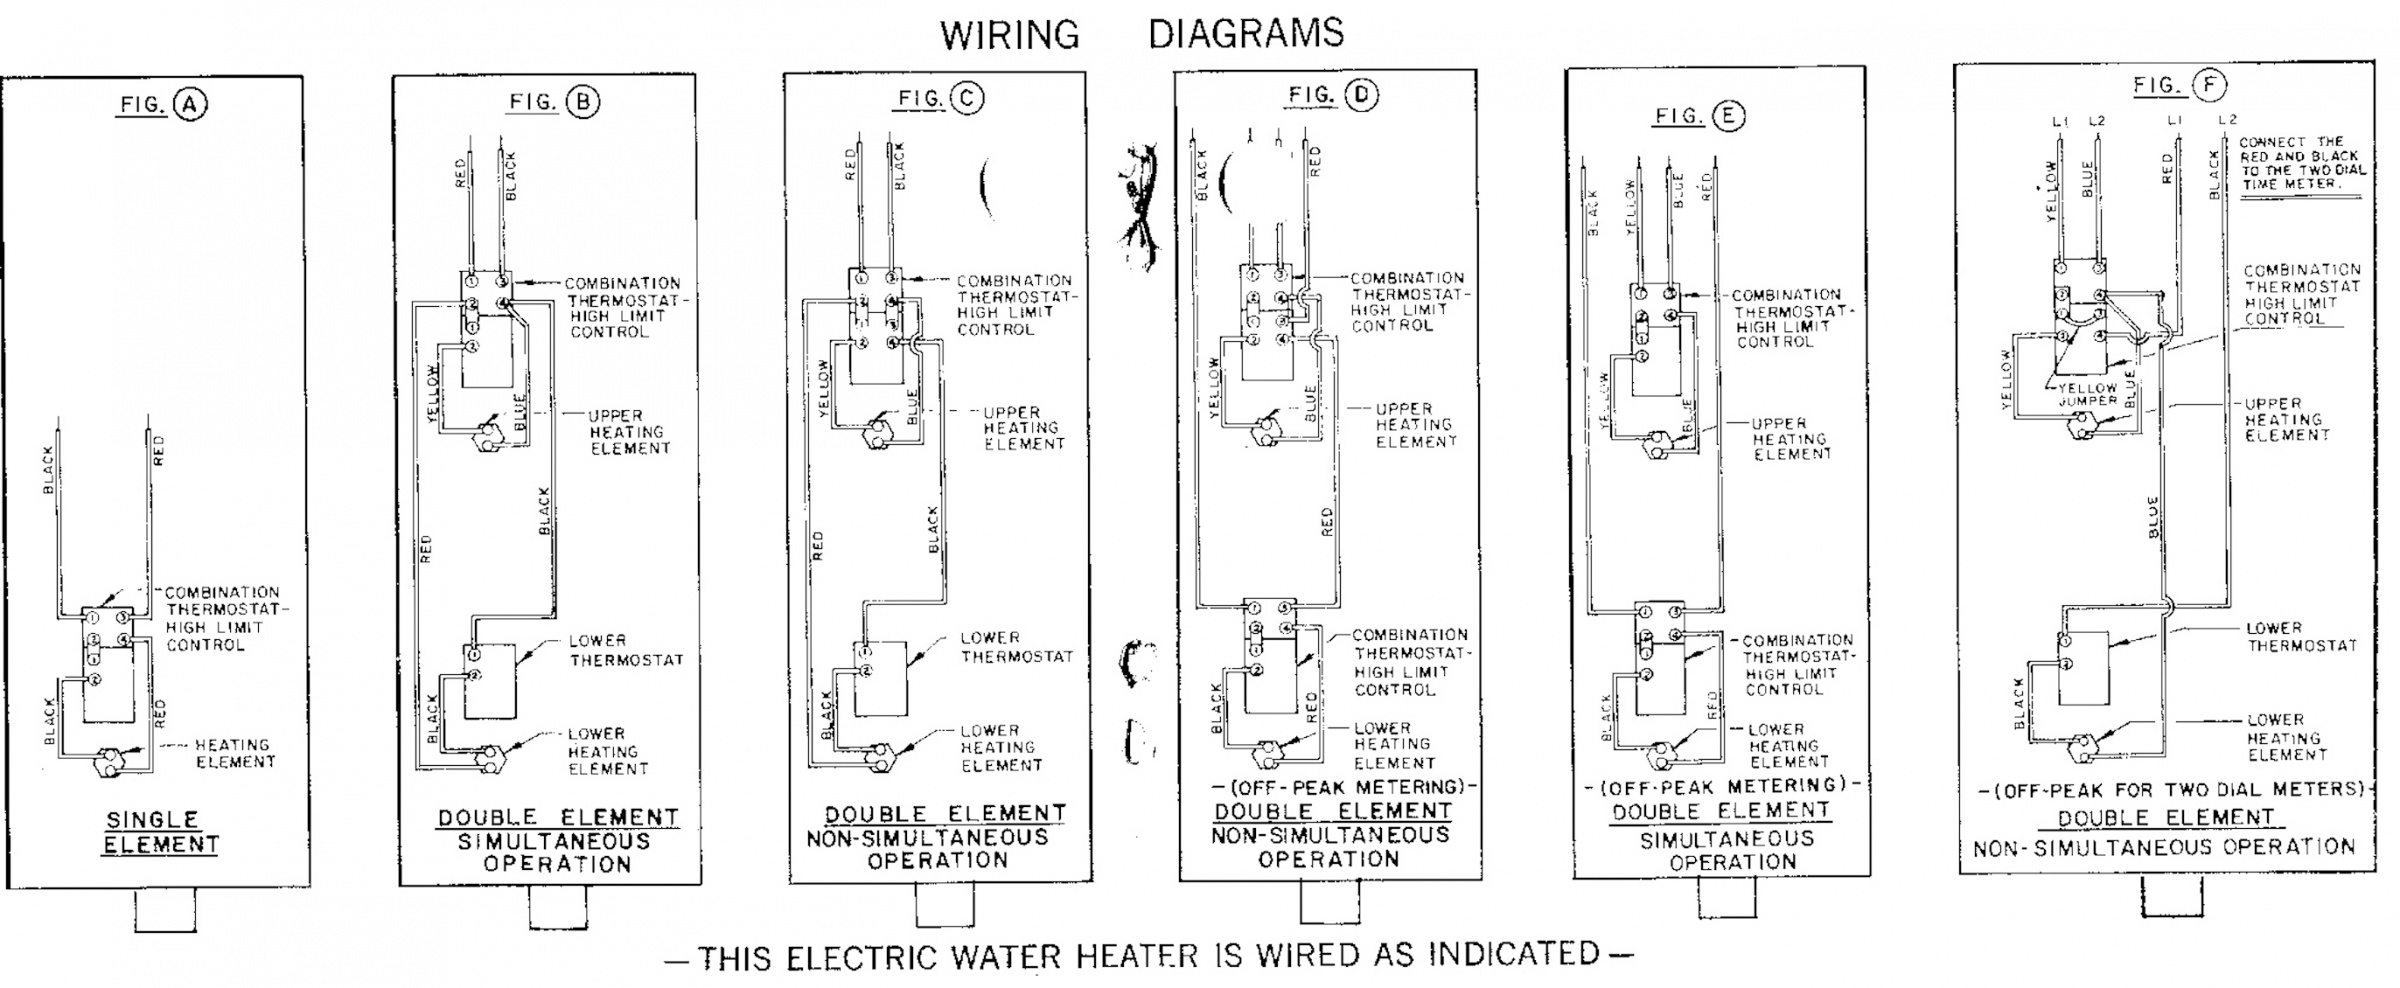 How Does A Dual-element Hwh Work  - Plumbing